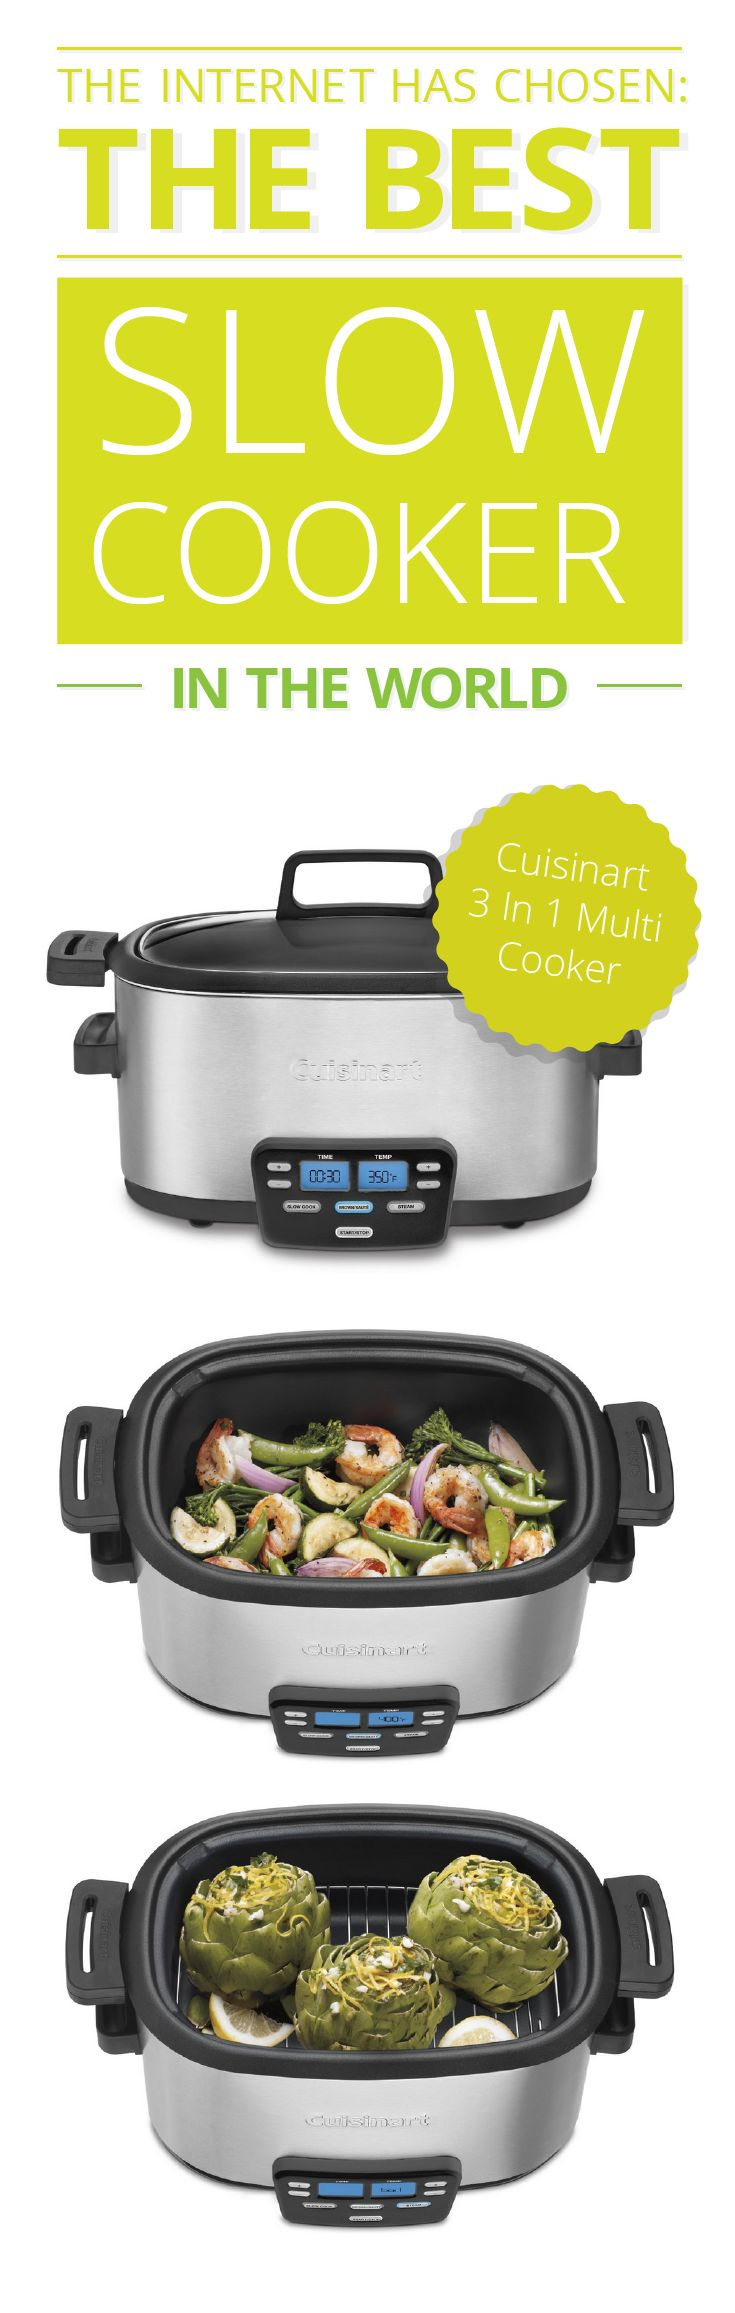 Don't know which slow cooker to buy? Say goodbye to buyers' remorse with these awesome slow cookers! #food #eat #healthy